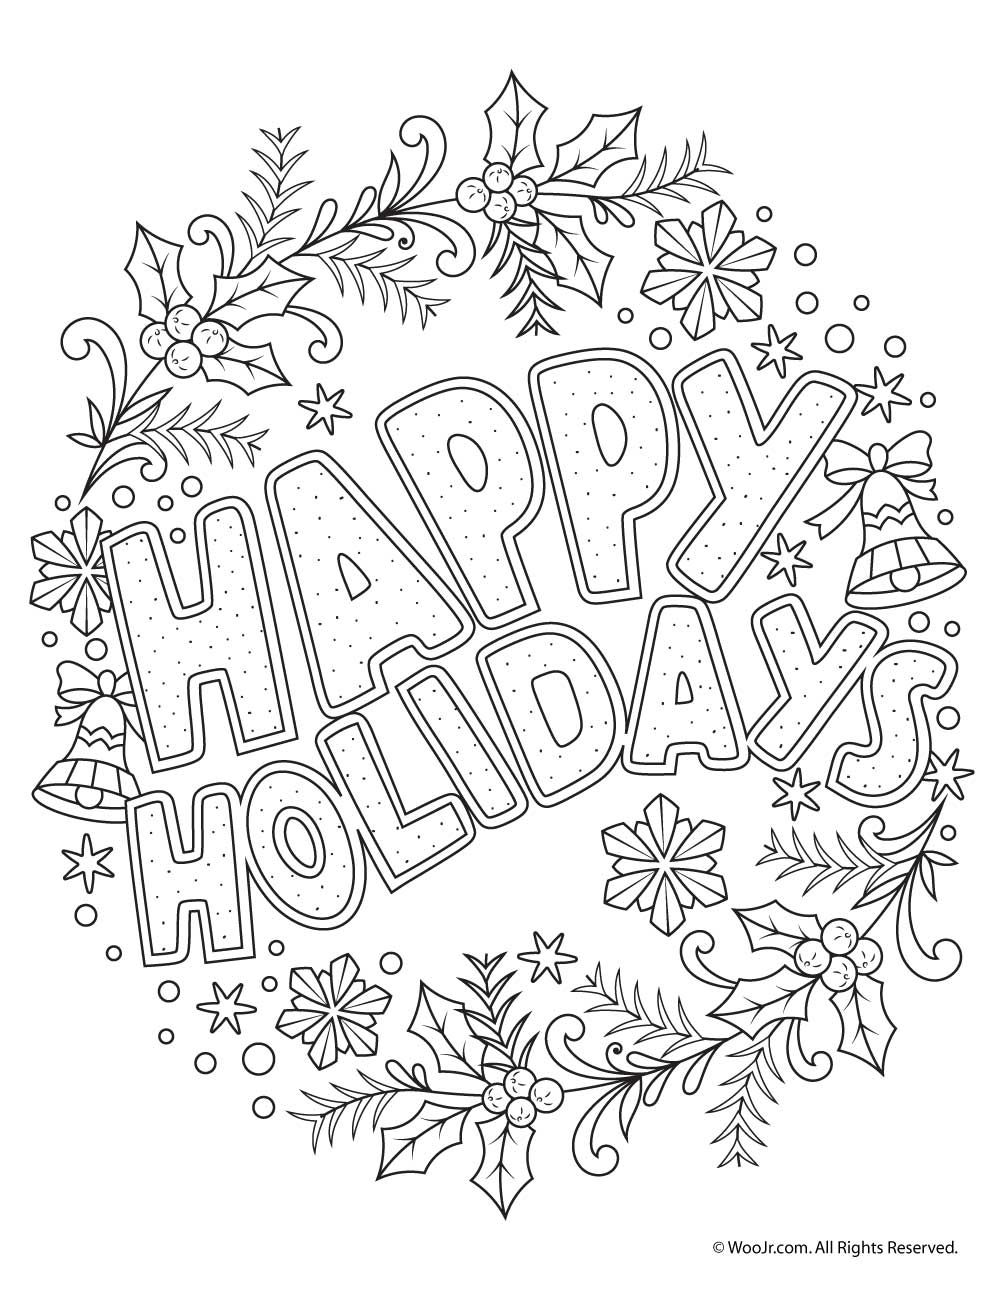 happy holidays adult coloring freebie holidays christmas coloring pages adult coloring. Black Bedroom Furniture Sets. Home Design Ideas